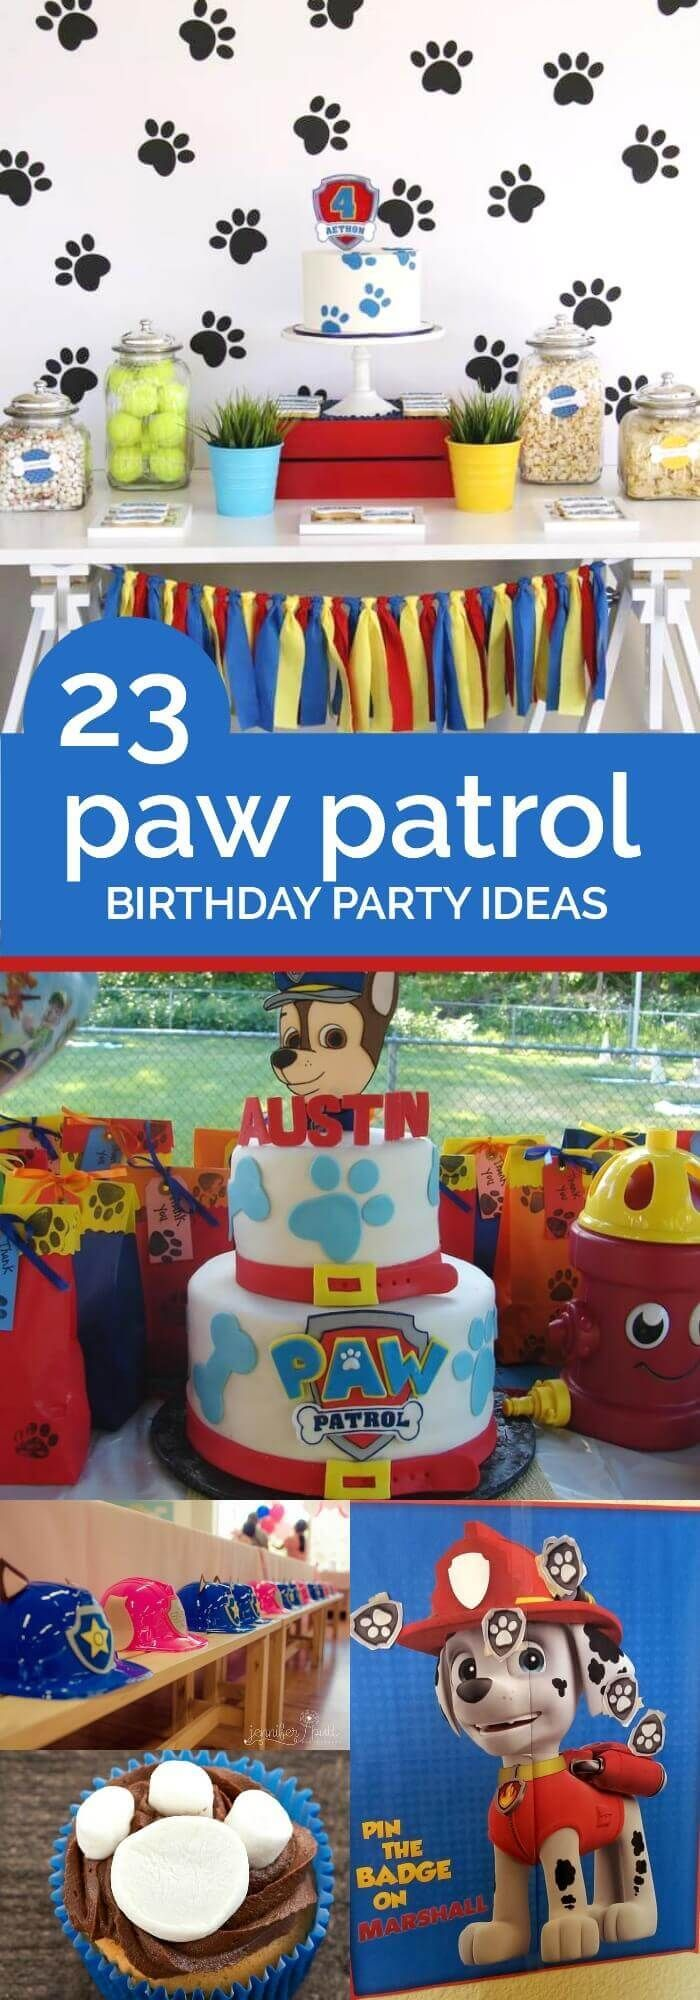 23 Paw Patrol Birthday Party Ideas